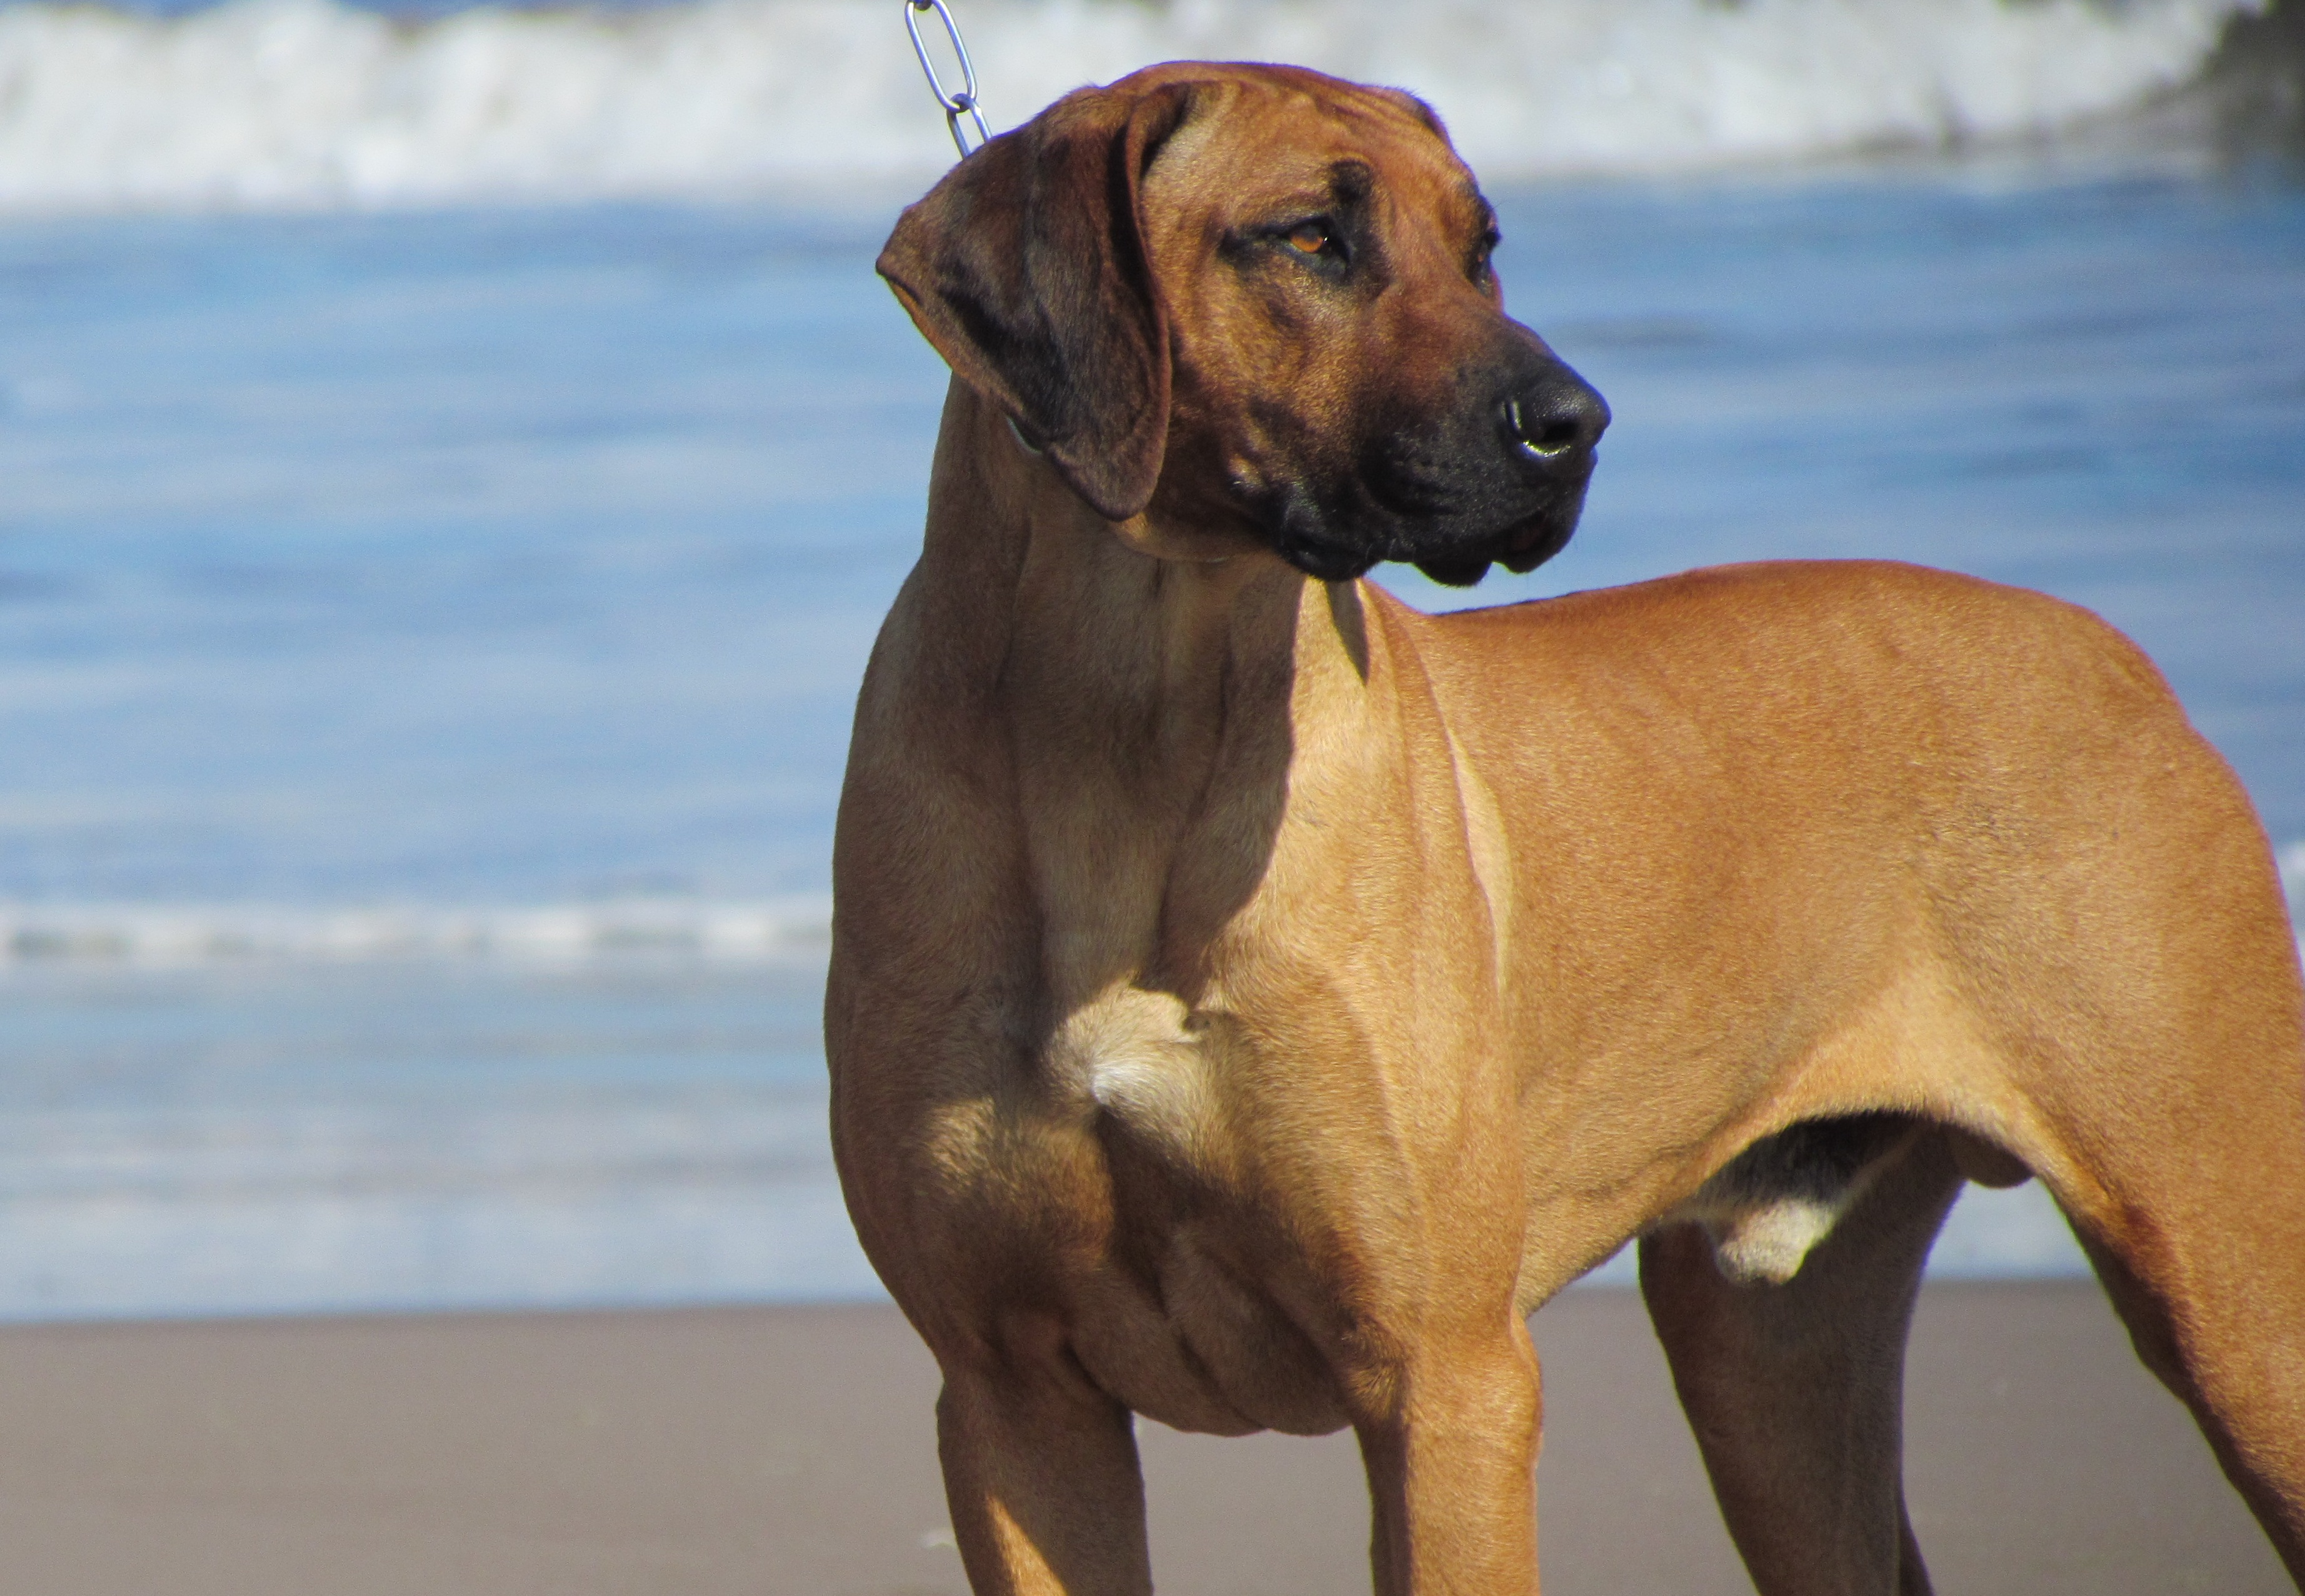 Big_rhodesian_male_IMG_6830.JPG